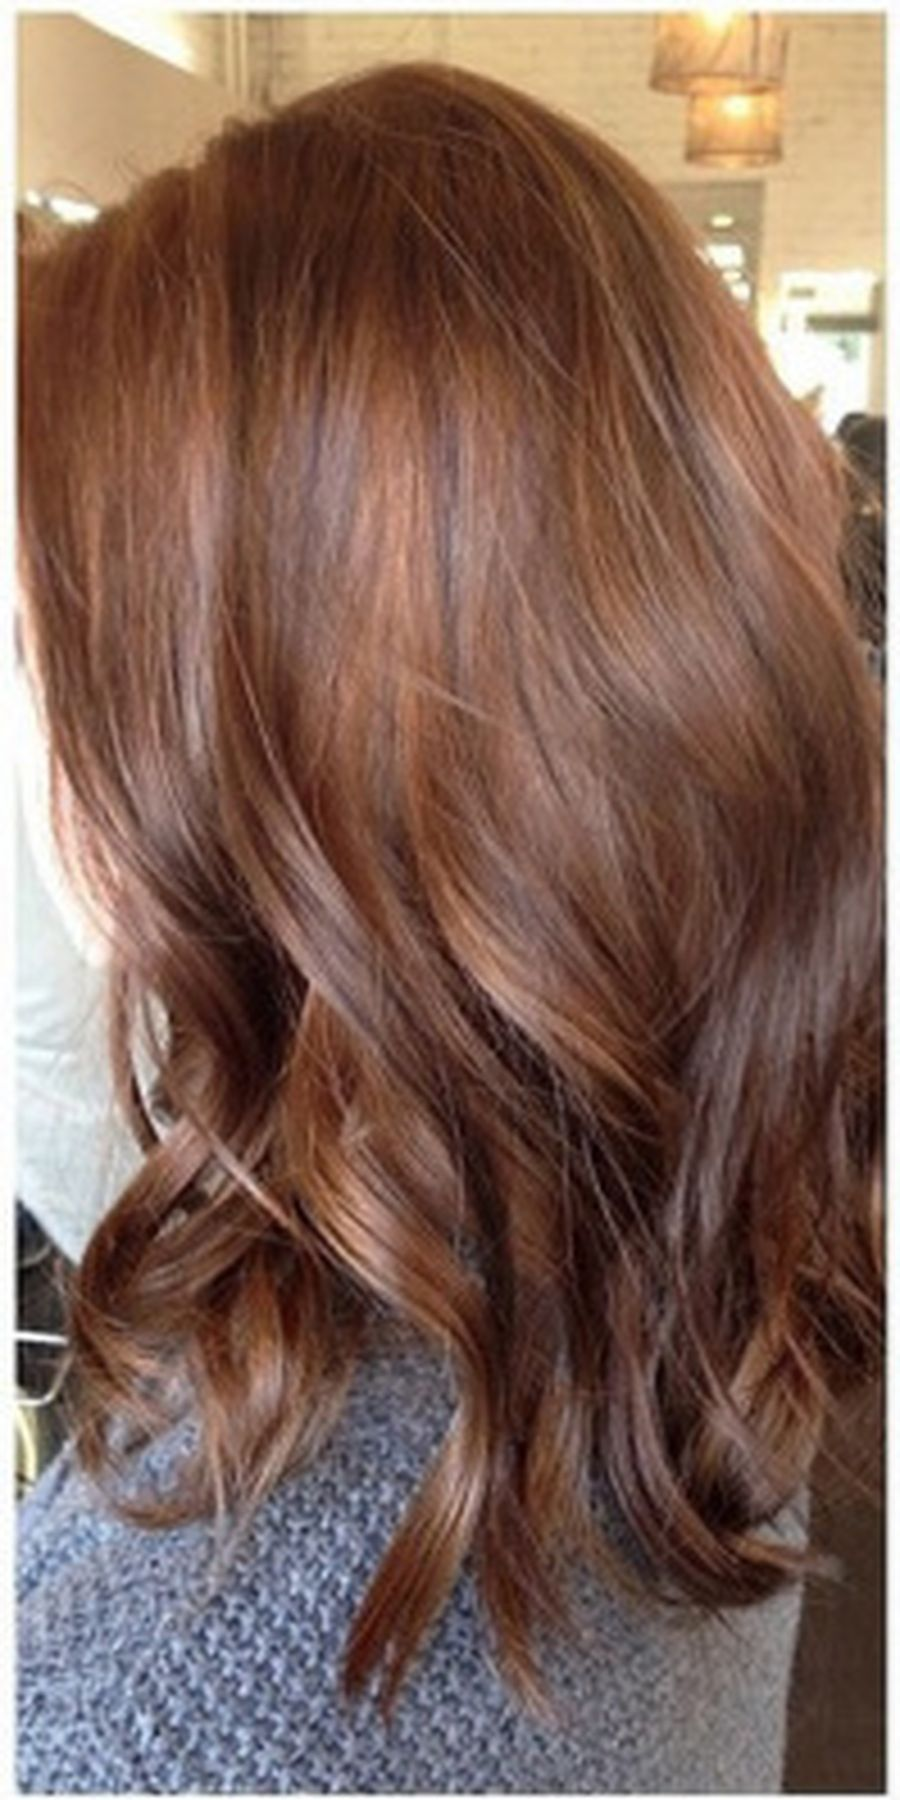 Inspiring haircolor style for winter and fall 46